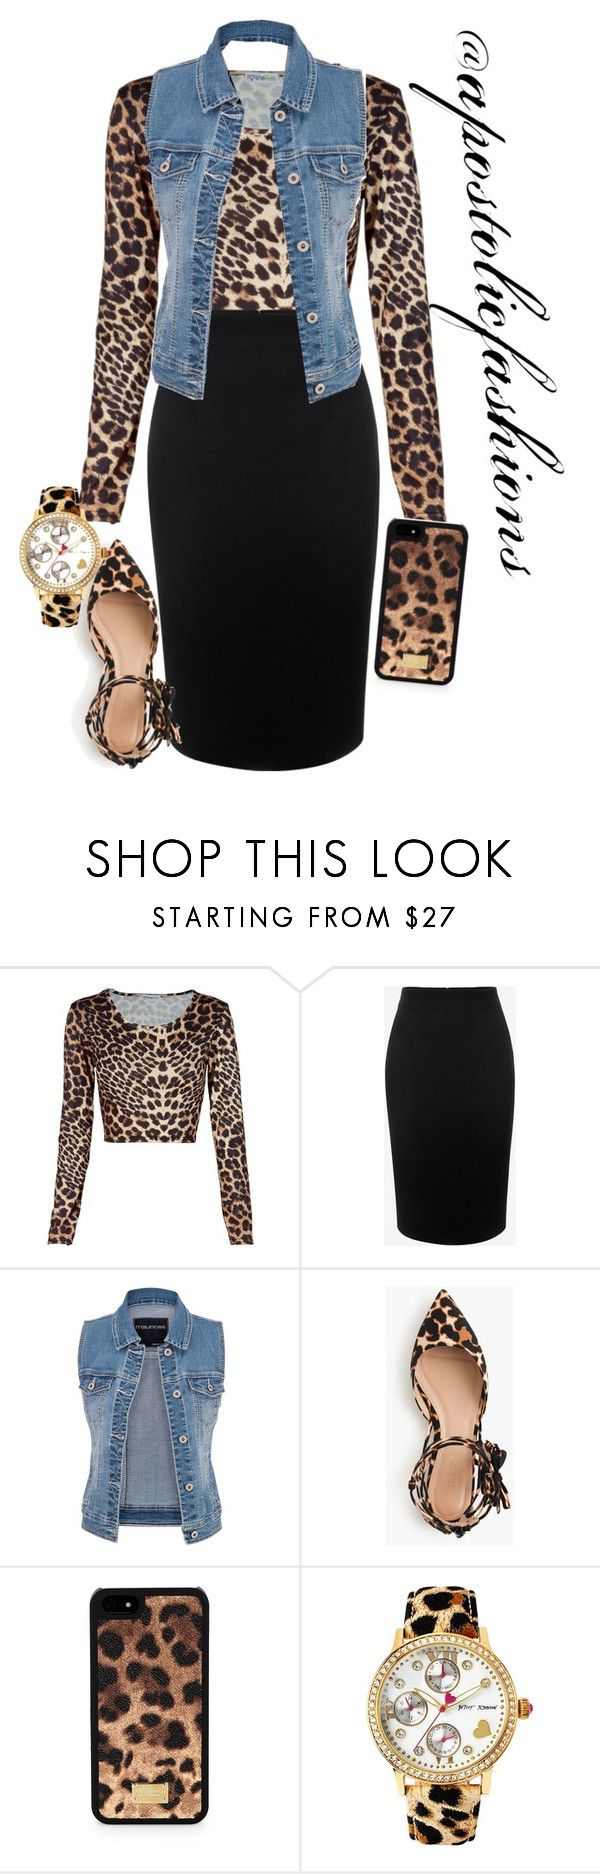 """""""Apostolic Fashions #1391"""" by apostolicfashions on Polyvore featuring Alexander McQueen, maurices, J.Crew, Dolce&Gabbana and Betsey Johnson"""